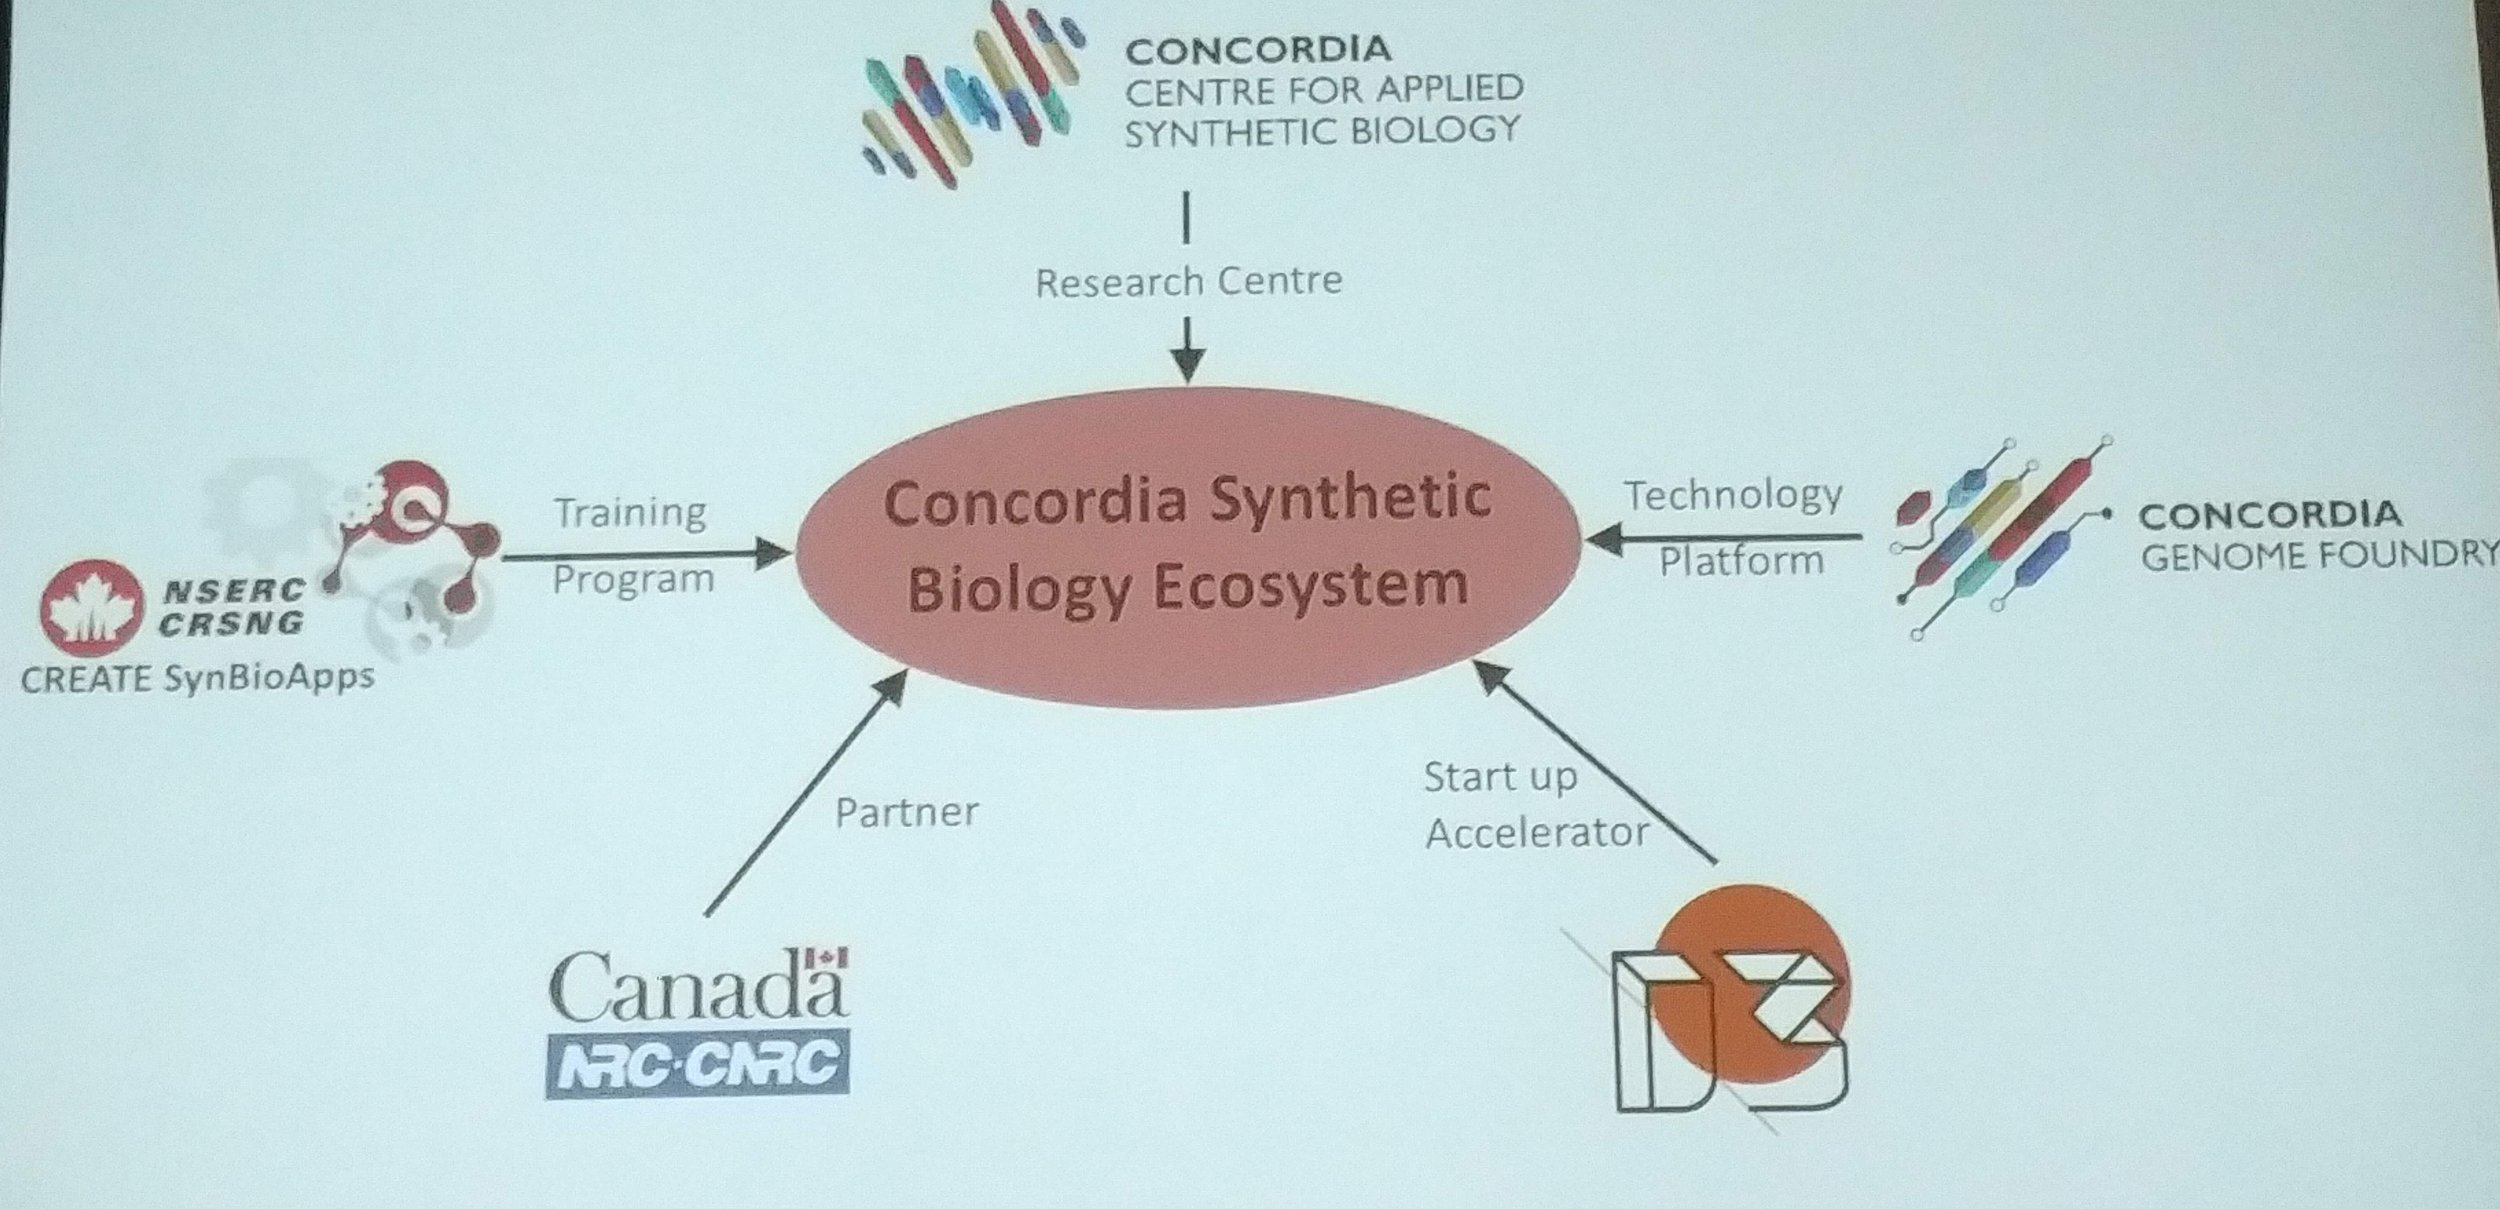 Vincent Martin presents on the exciting synbio ecosystem being developed at Concordia University.  (Photo by Benjamin Scott)